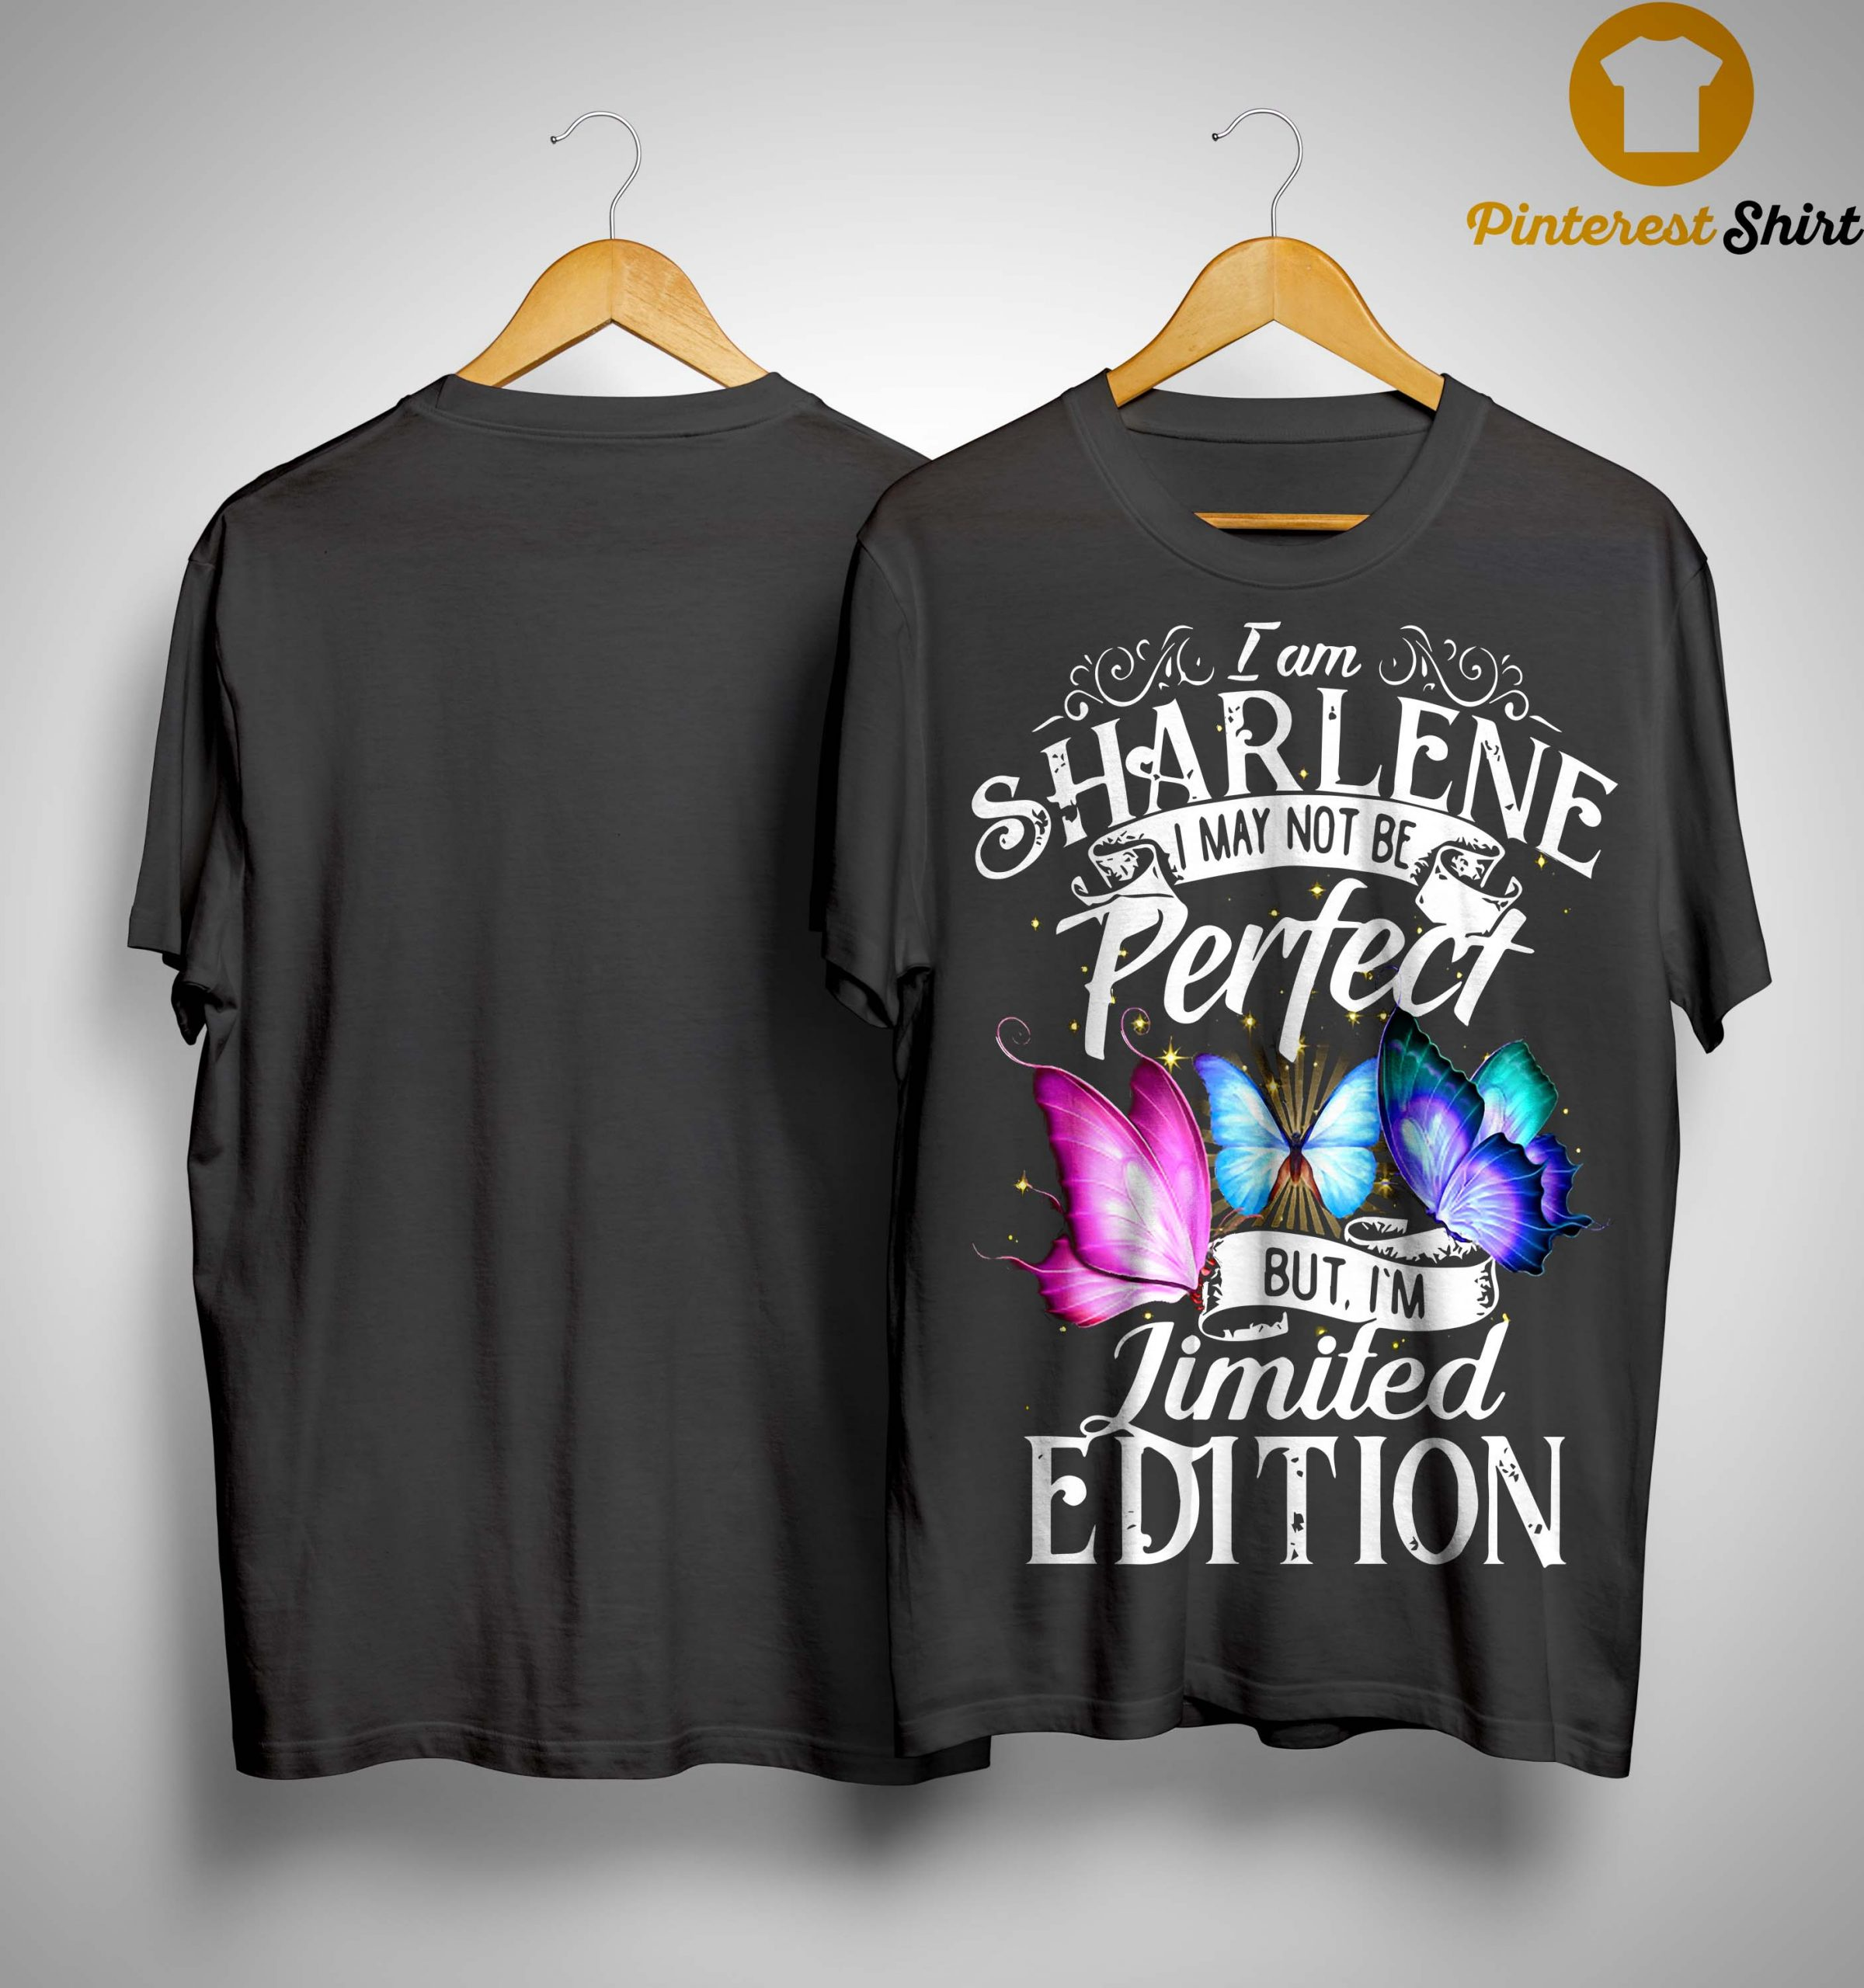 I Am Sharlene I May Not Be Perfect But I'm Limited Edition Shirt